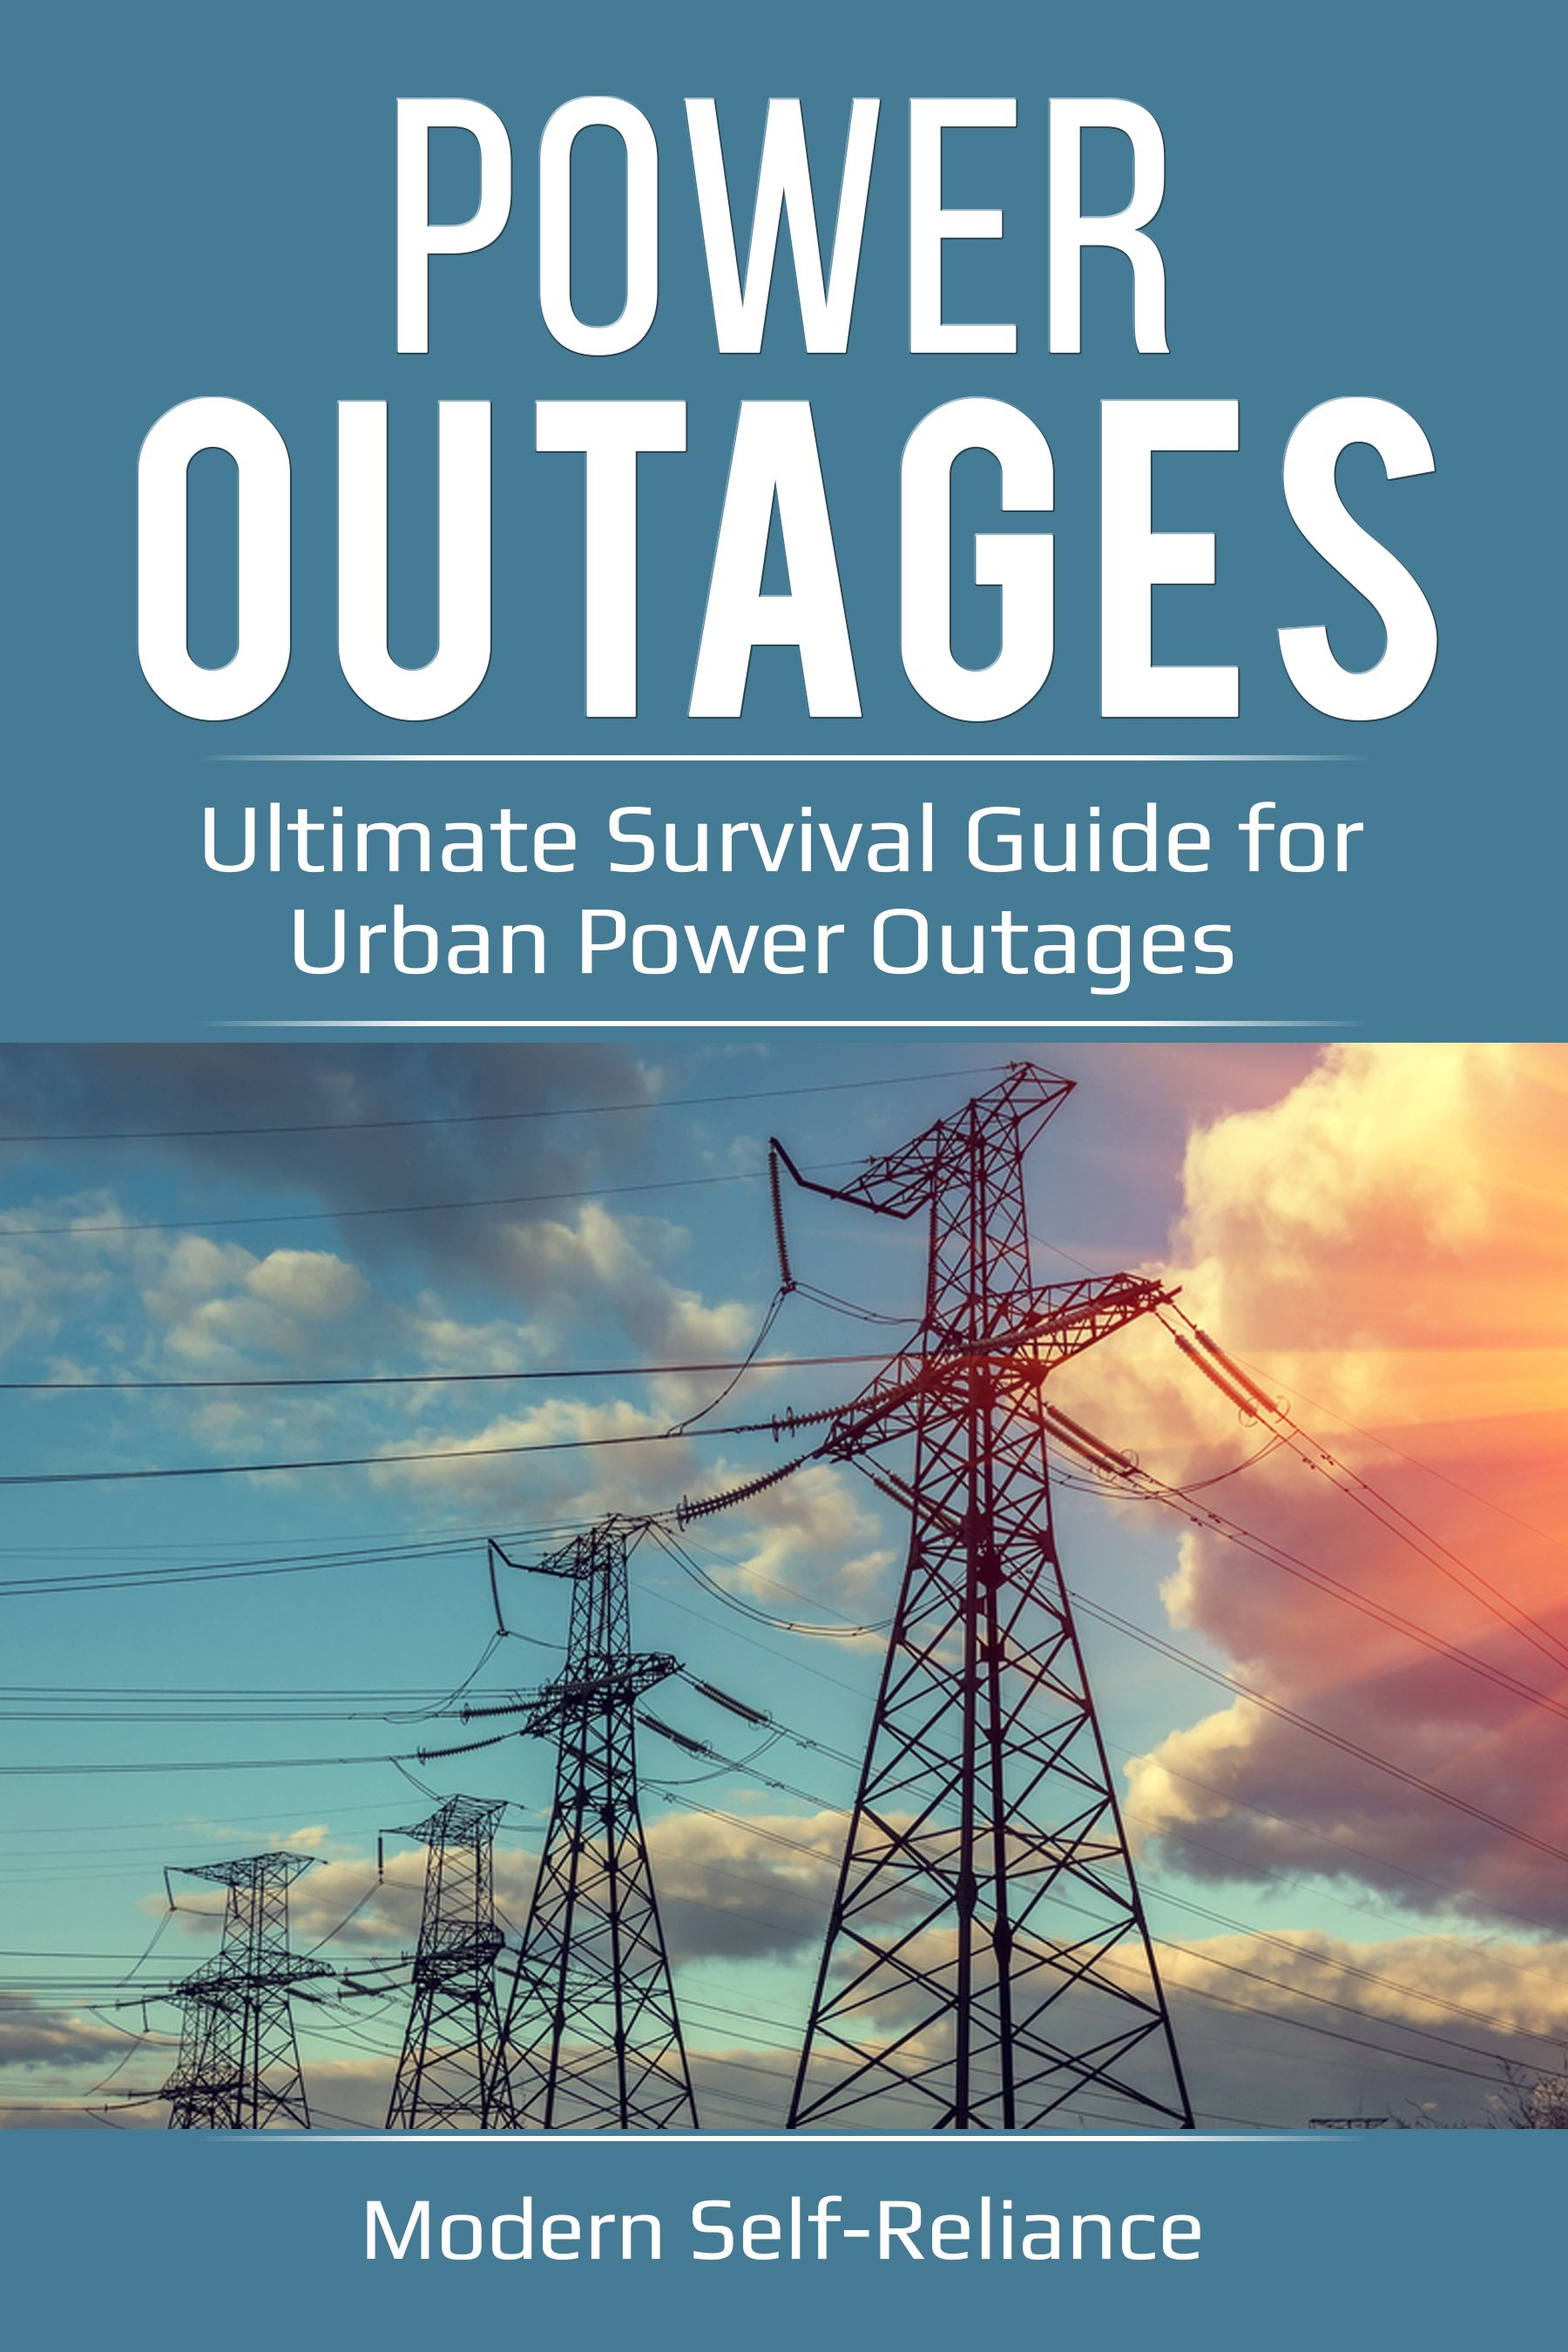 Power Outages Ultimate Survival Guide For Urban Power Outages By